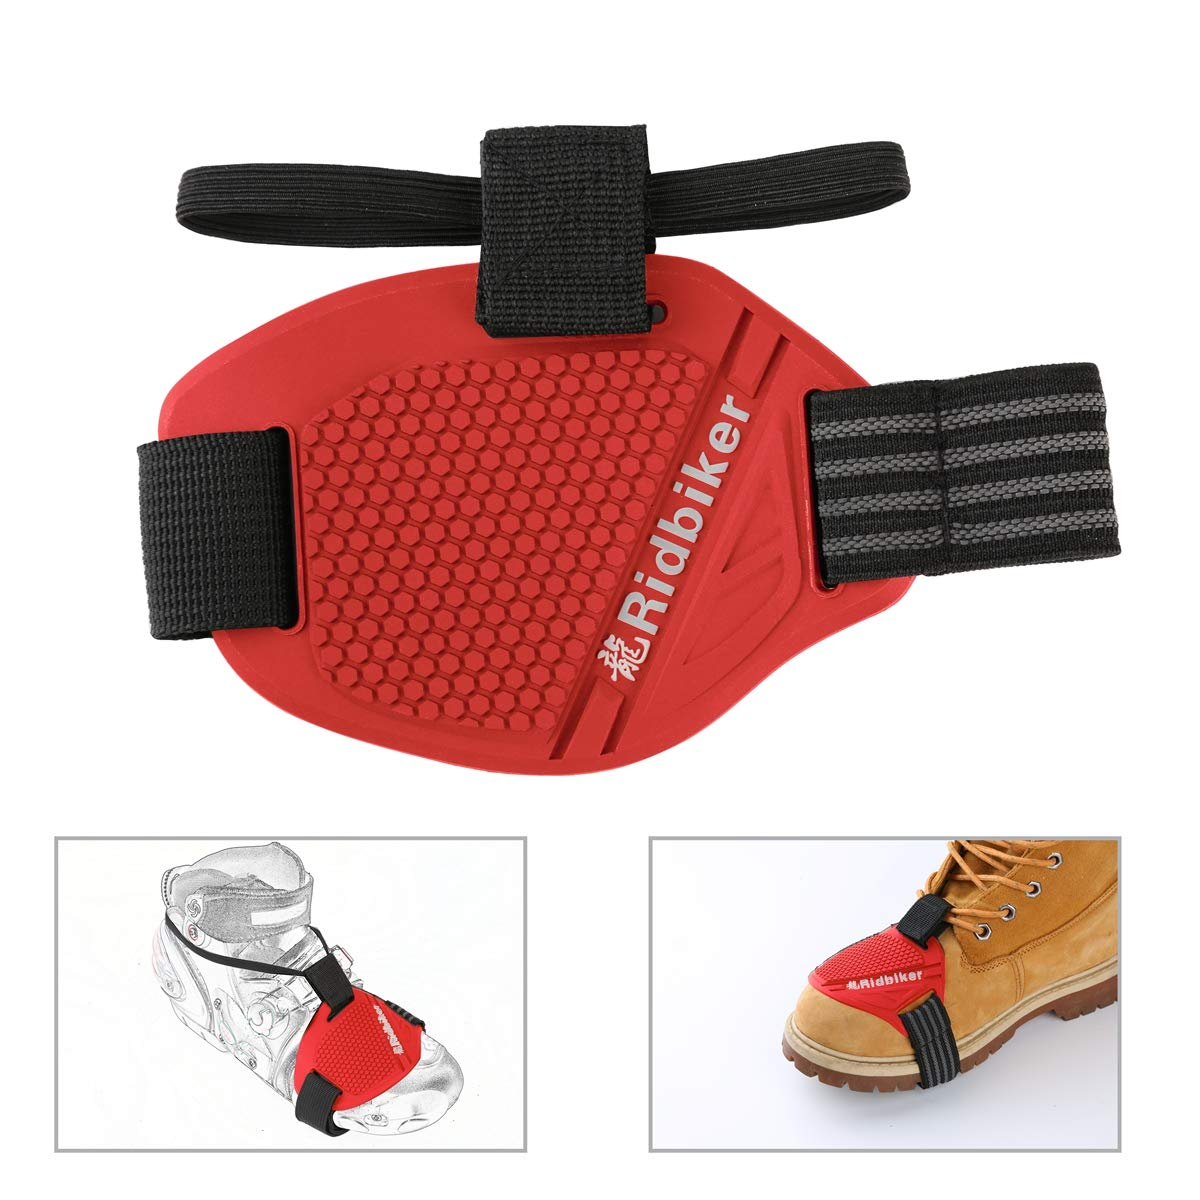 Red Ⅲ Ridbiker Motorcycle Motorbike Shift Pad Shoe Boot Cover Protective Gear